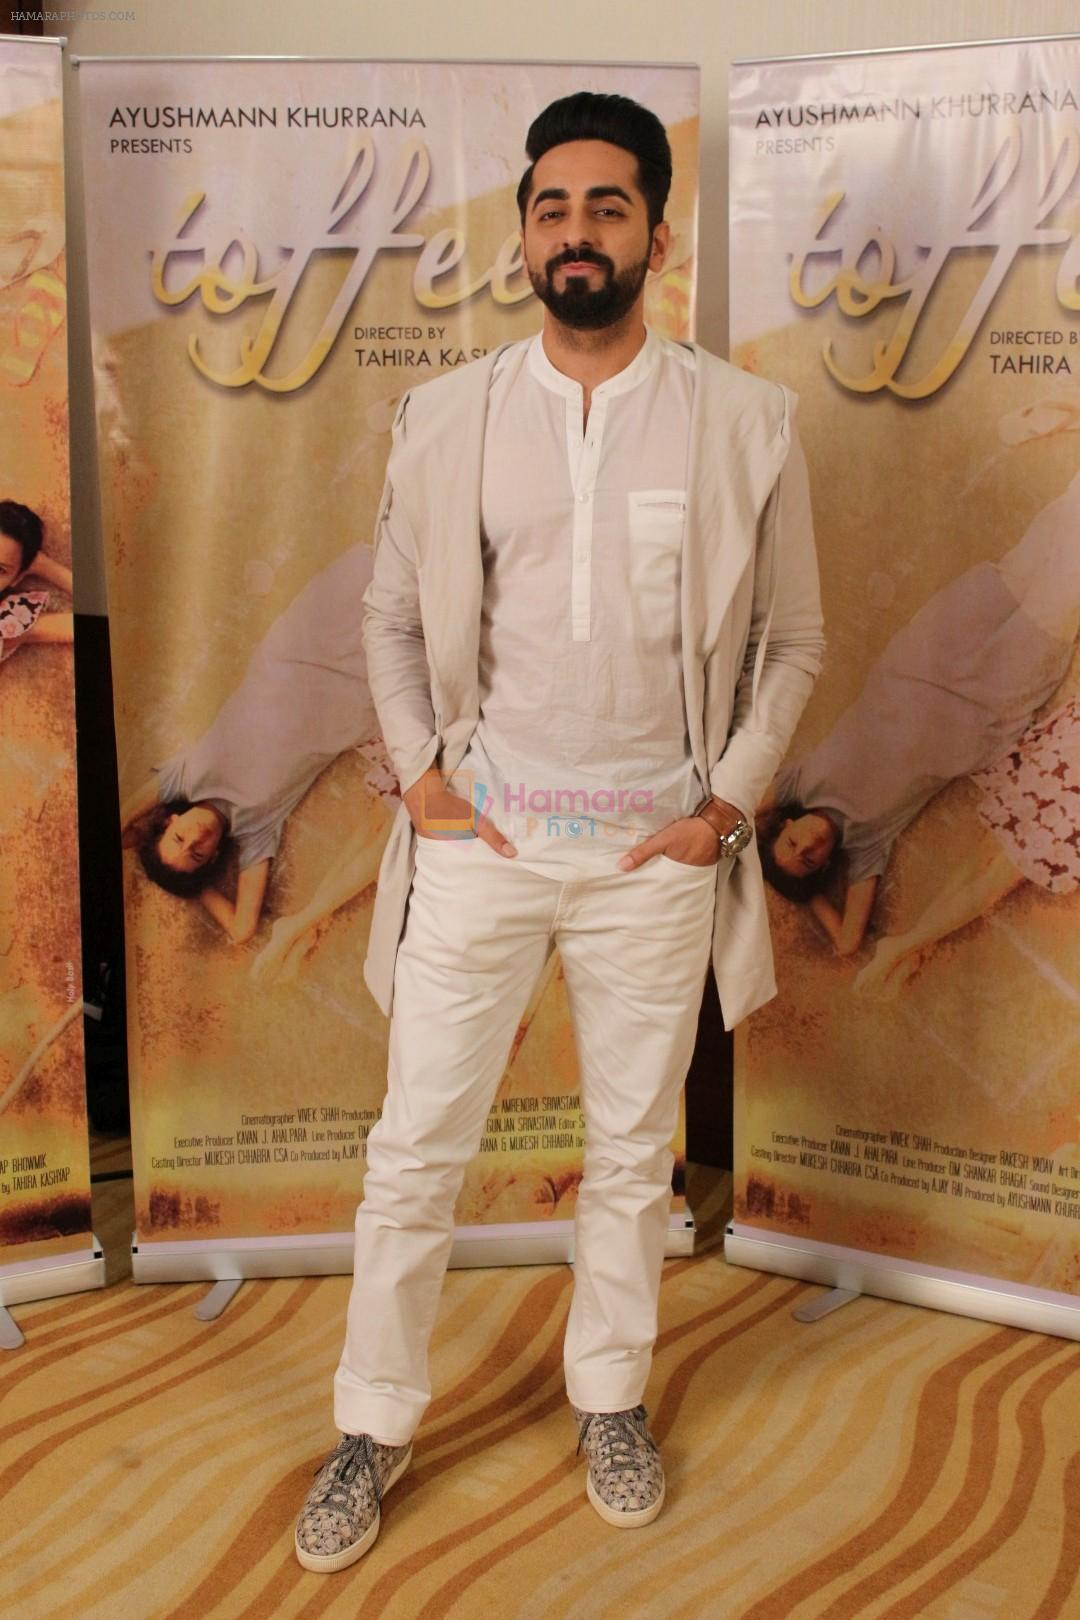 Ayushmann Khurrana at the promotion of Film Toffee on 12th Oct 2017 shown to user